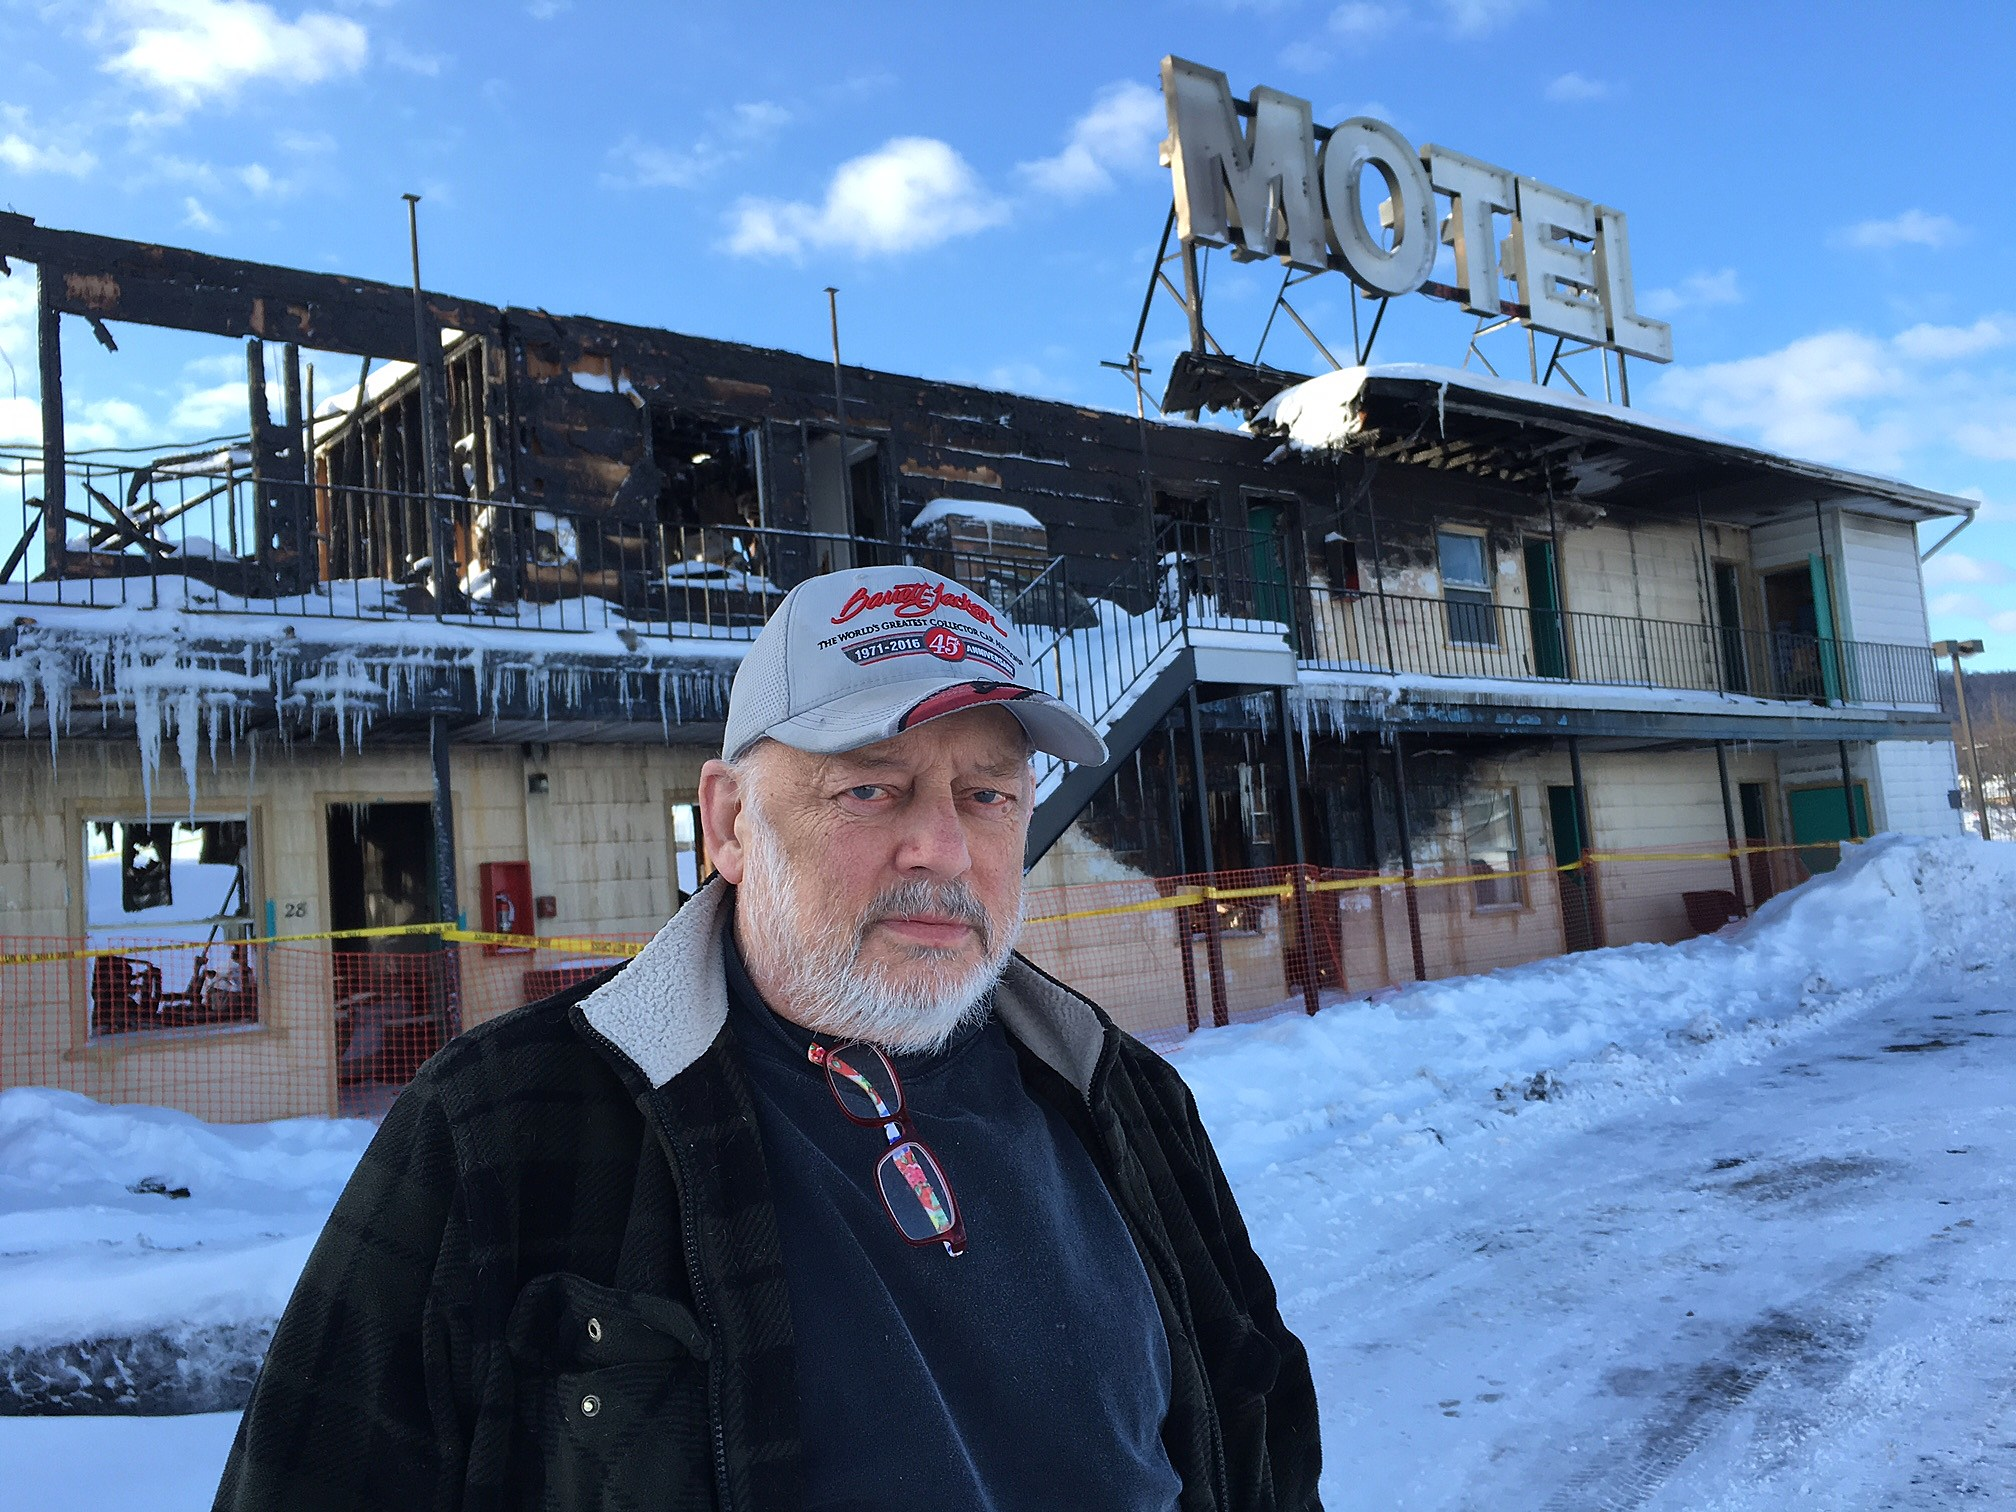 Walt Stevens stands near the fire-damaged Skylark Motel on March 16, 2017. (Photo: Bob Joseph/WNBF News)